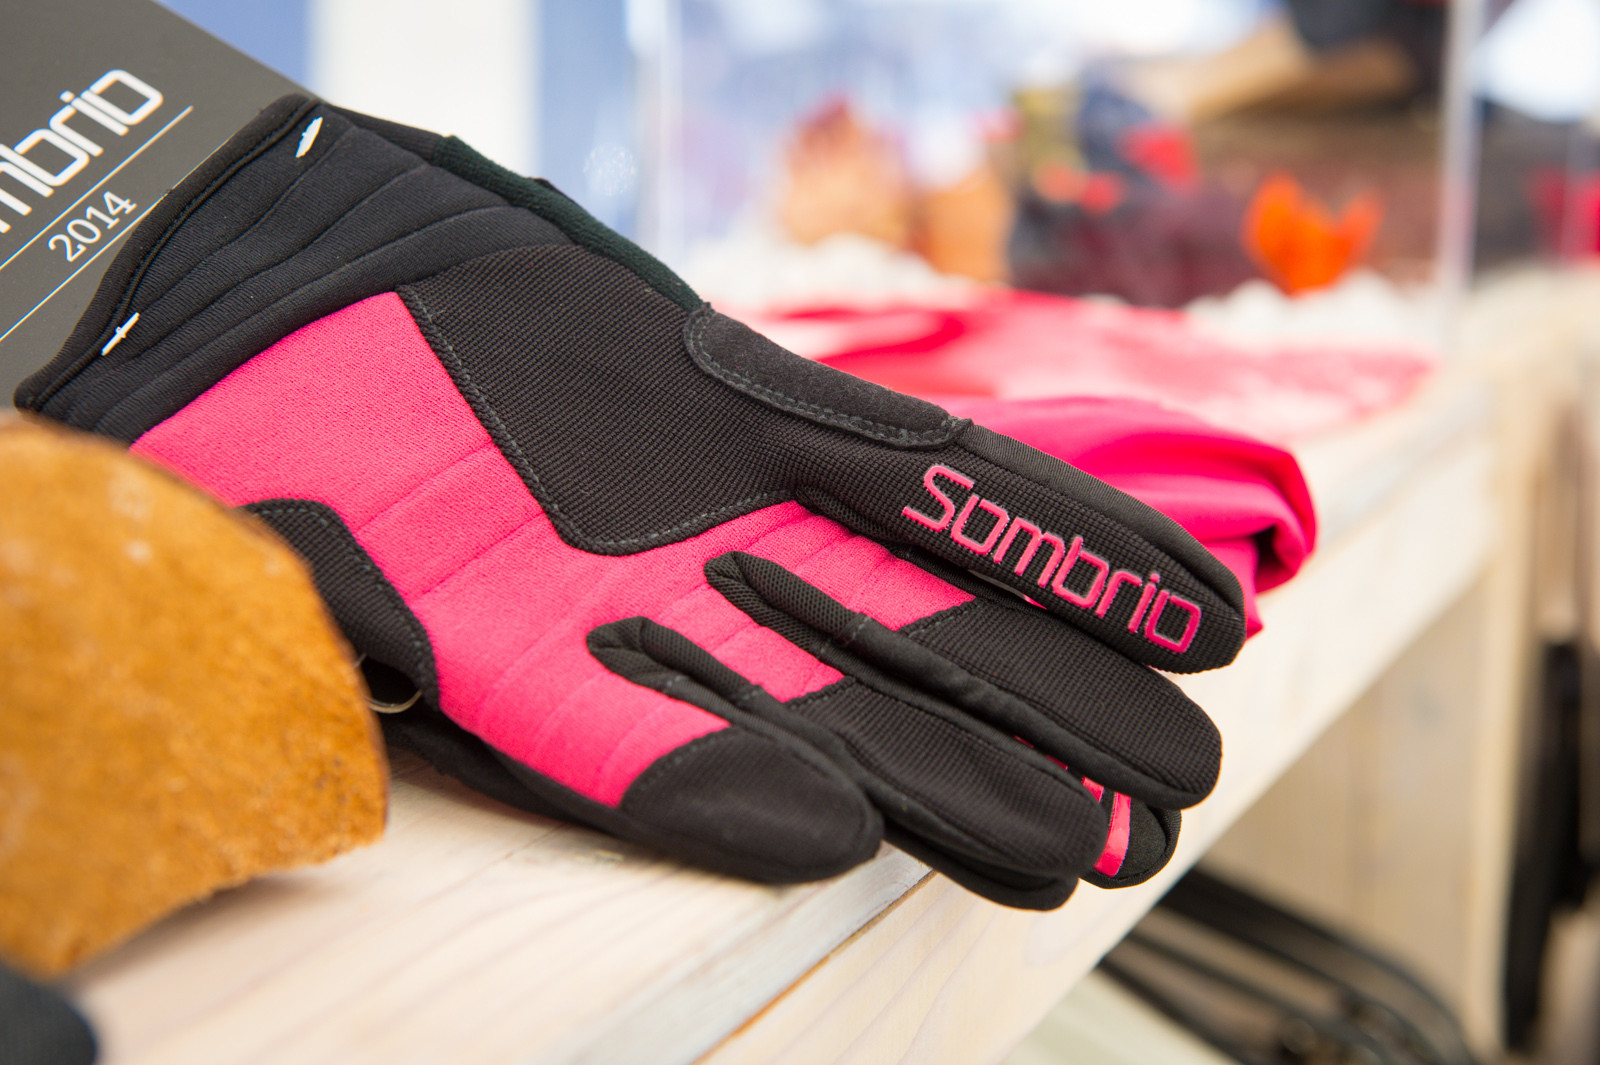 2014 Sombrio Women's Ruckus Glove - 2014 Mountain Bike Apparel & Protection at Eurobike 2013 - Mountain Biking Pictures - Vital MTB